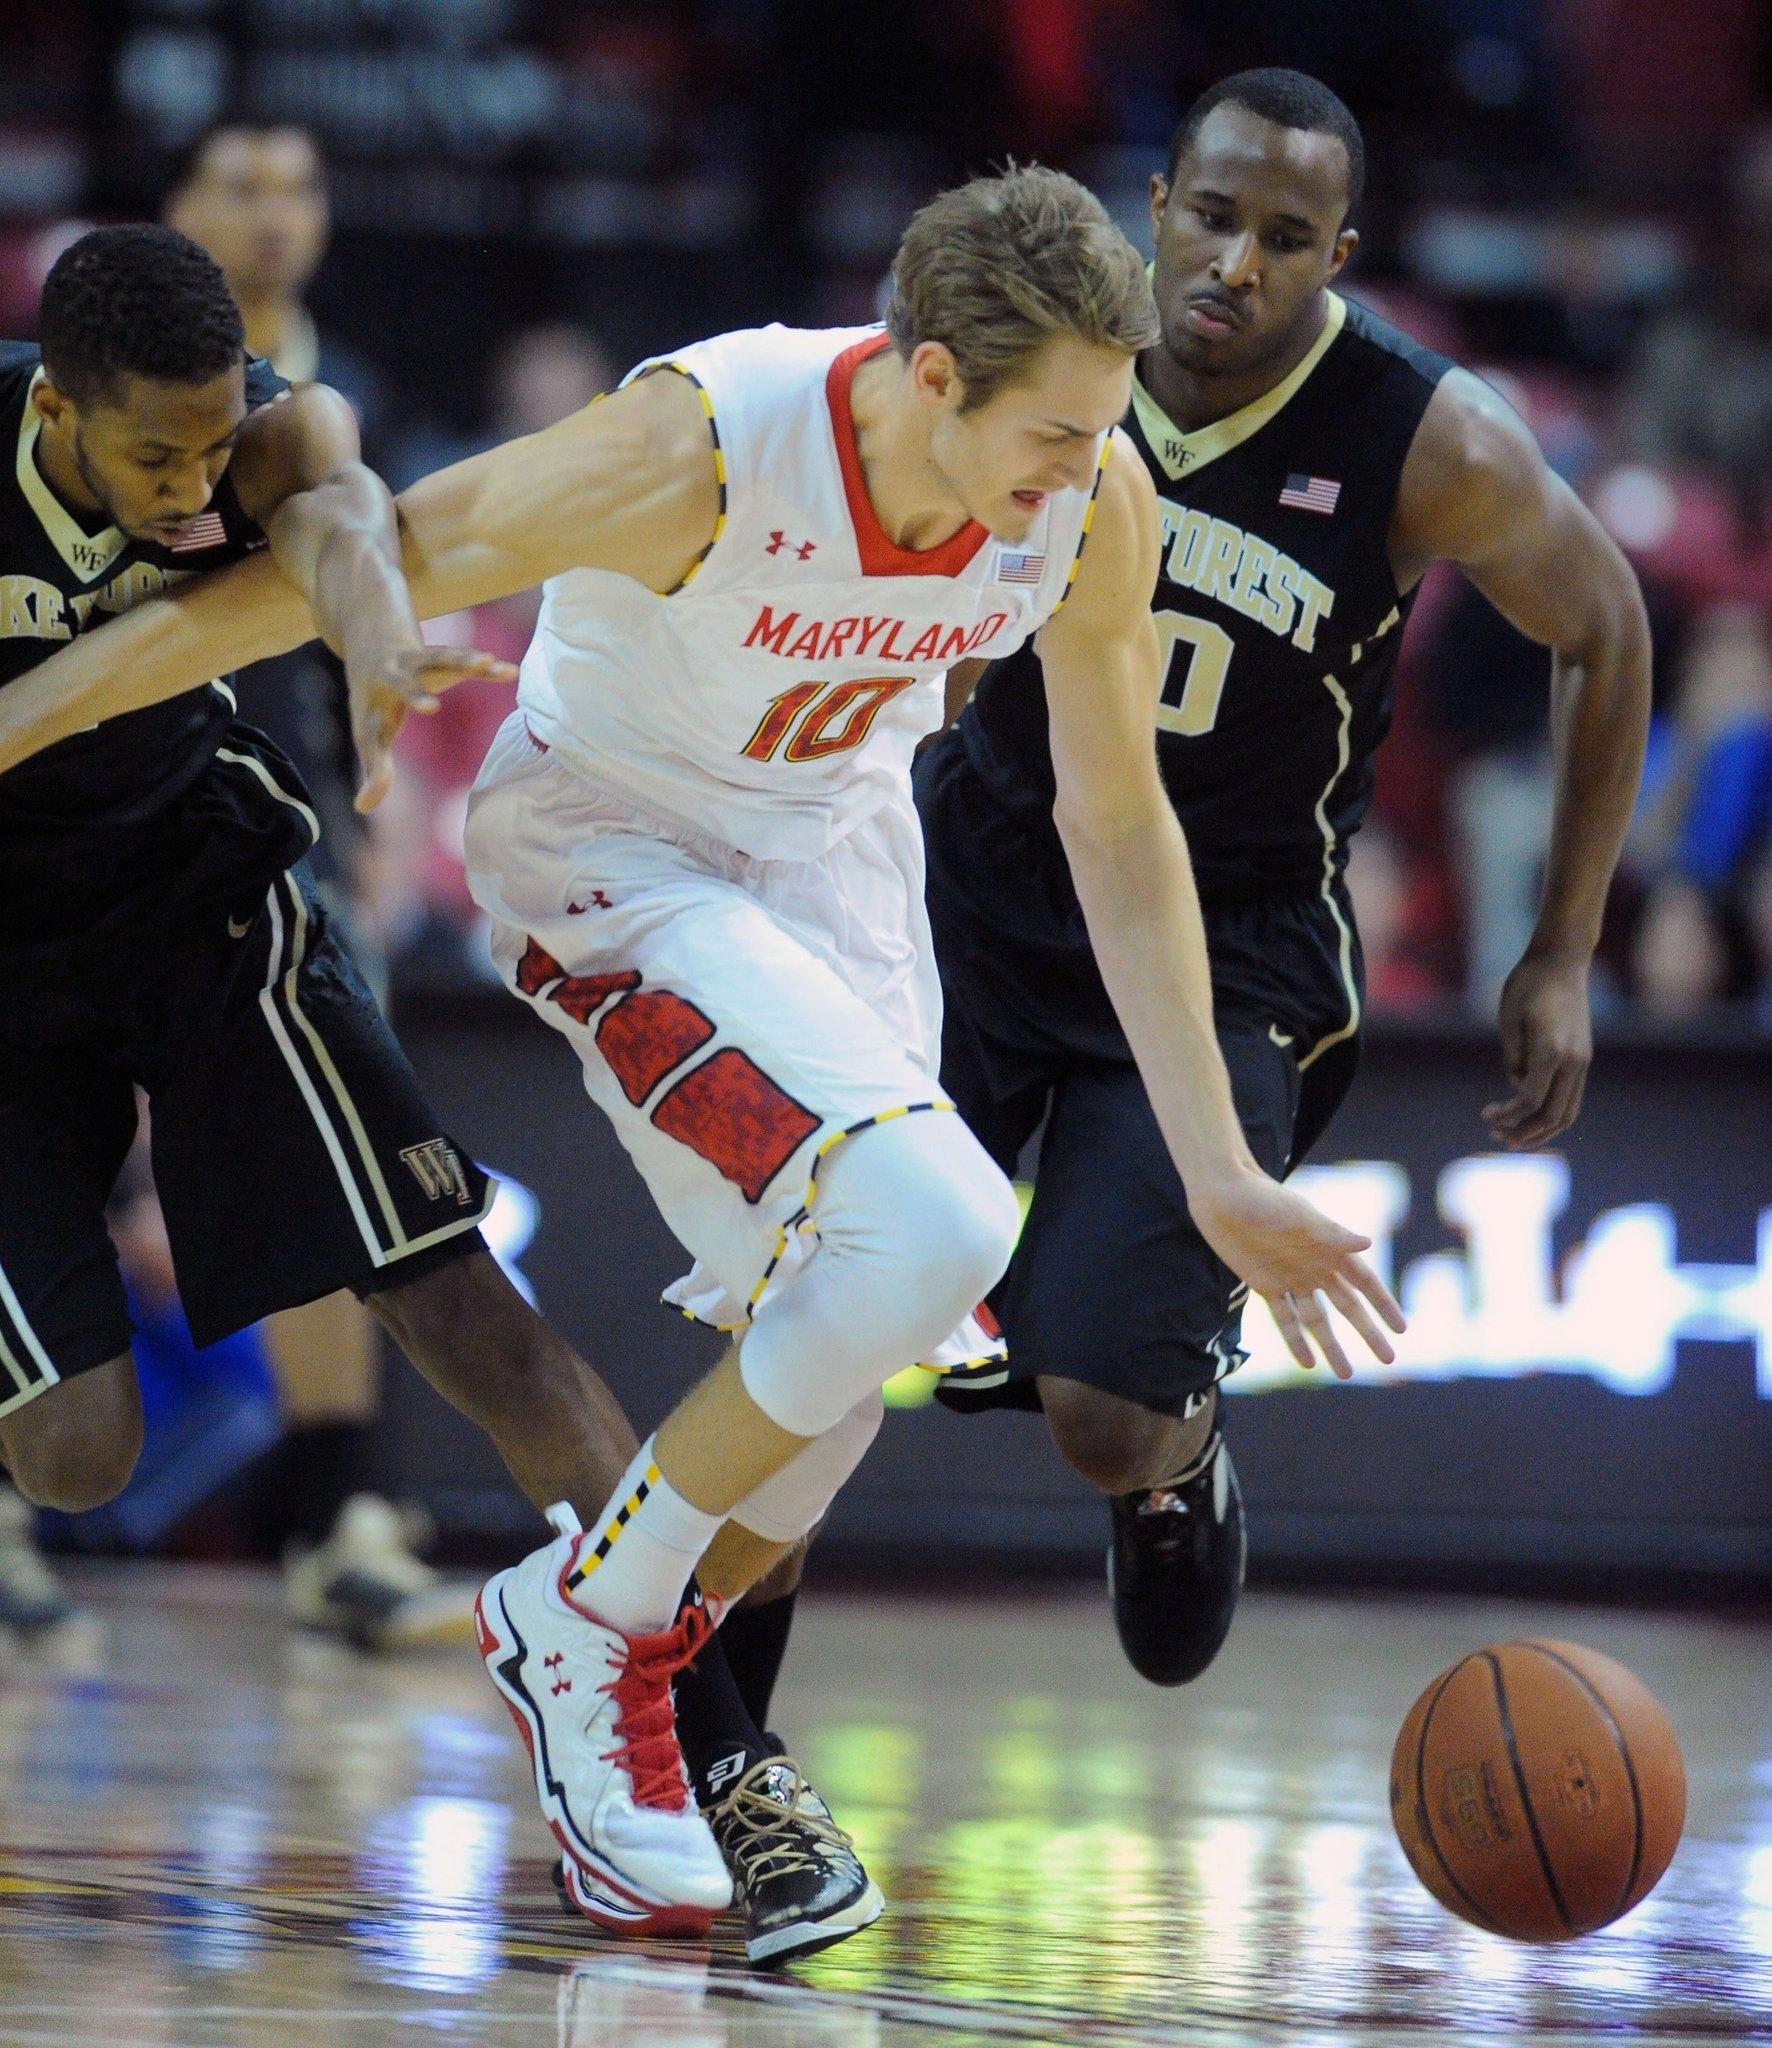 Terps' Jake Layman steals the ball against Wake Forest.